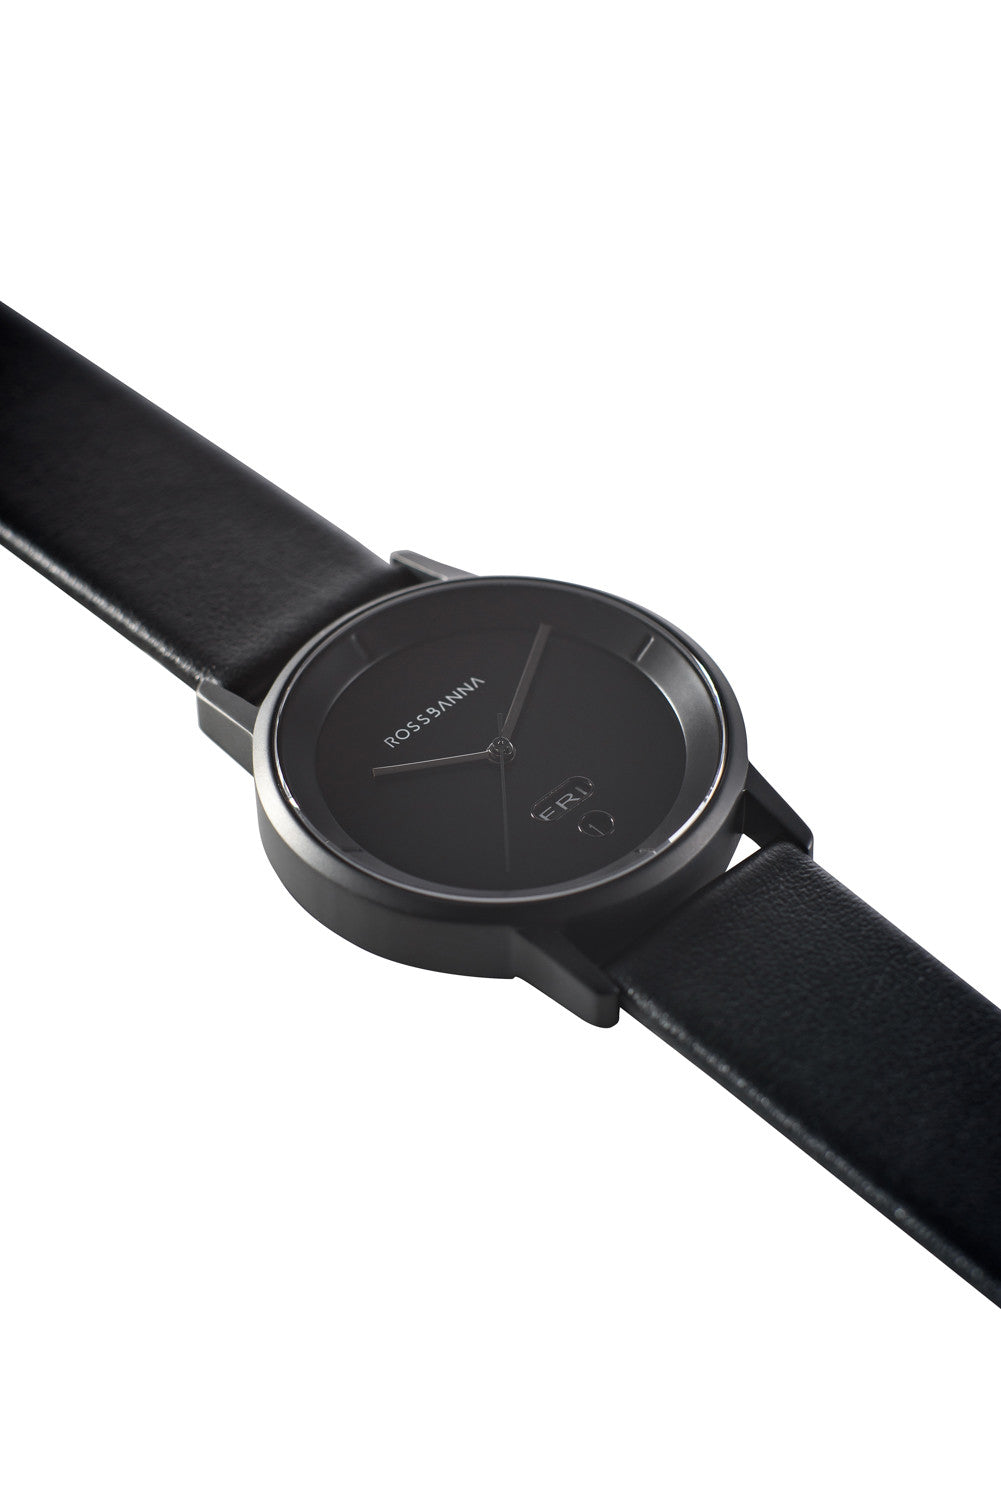 Matte black Rossbanna Cornice watch with black strap, minimal, elegant, timeless, unique timepiece 02